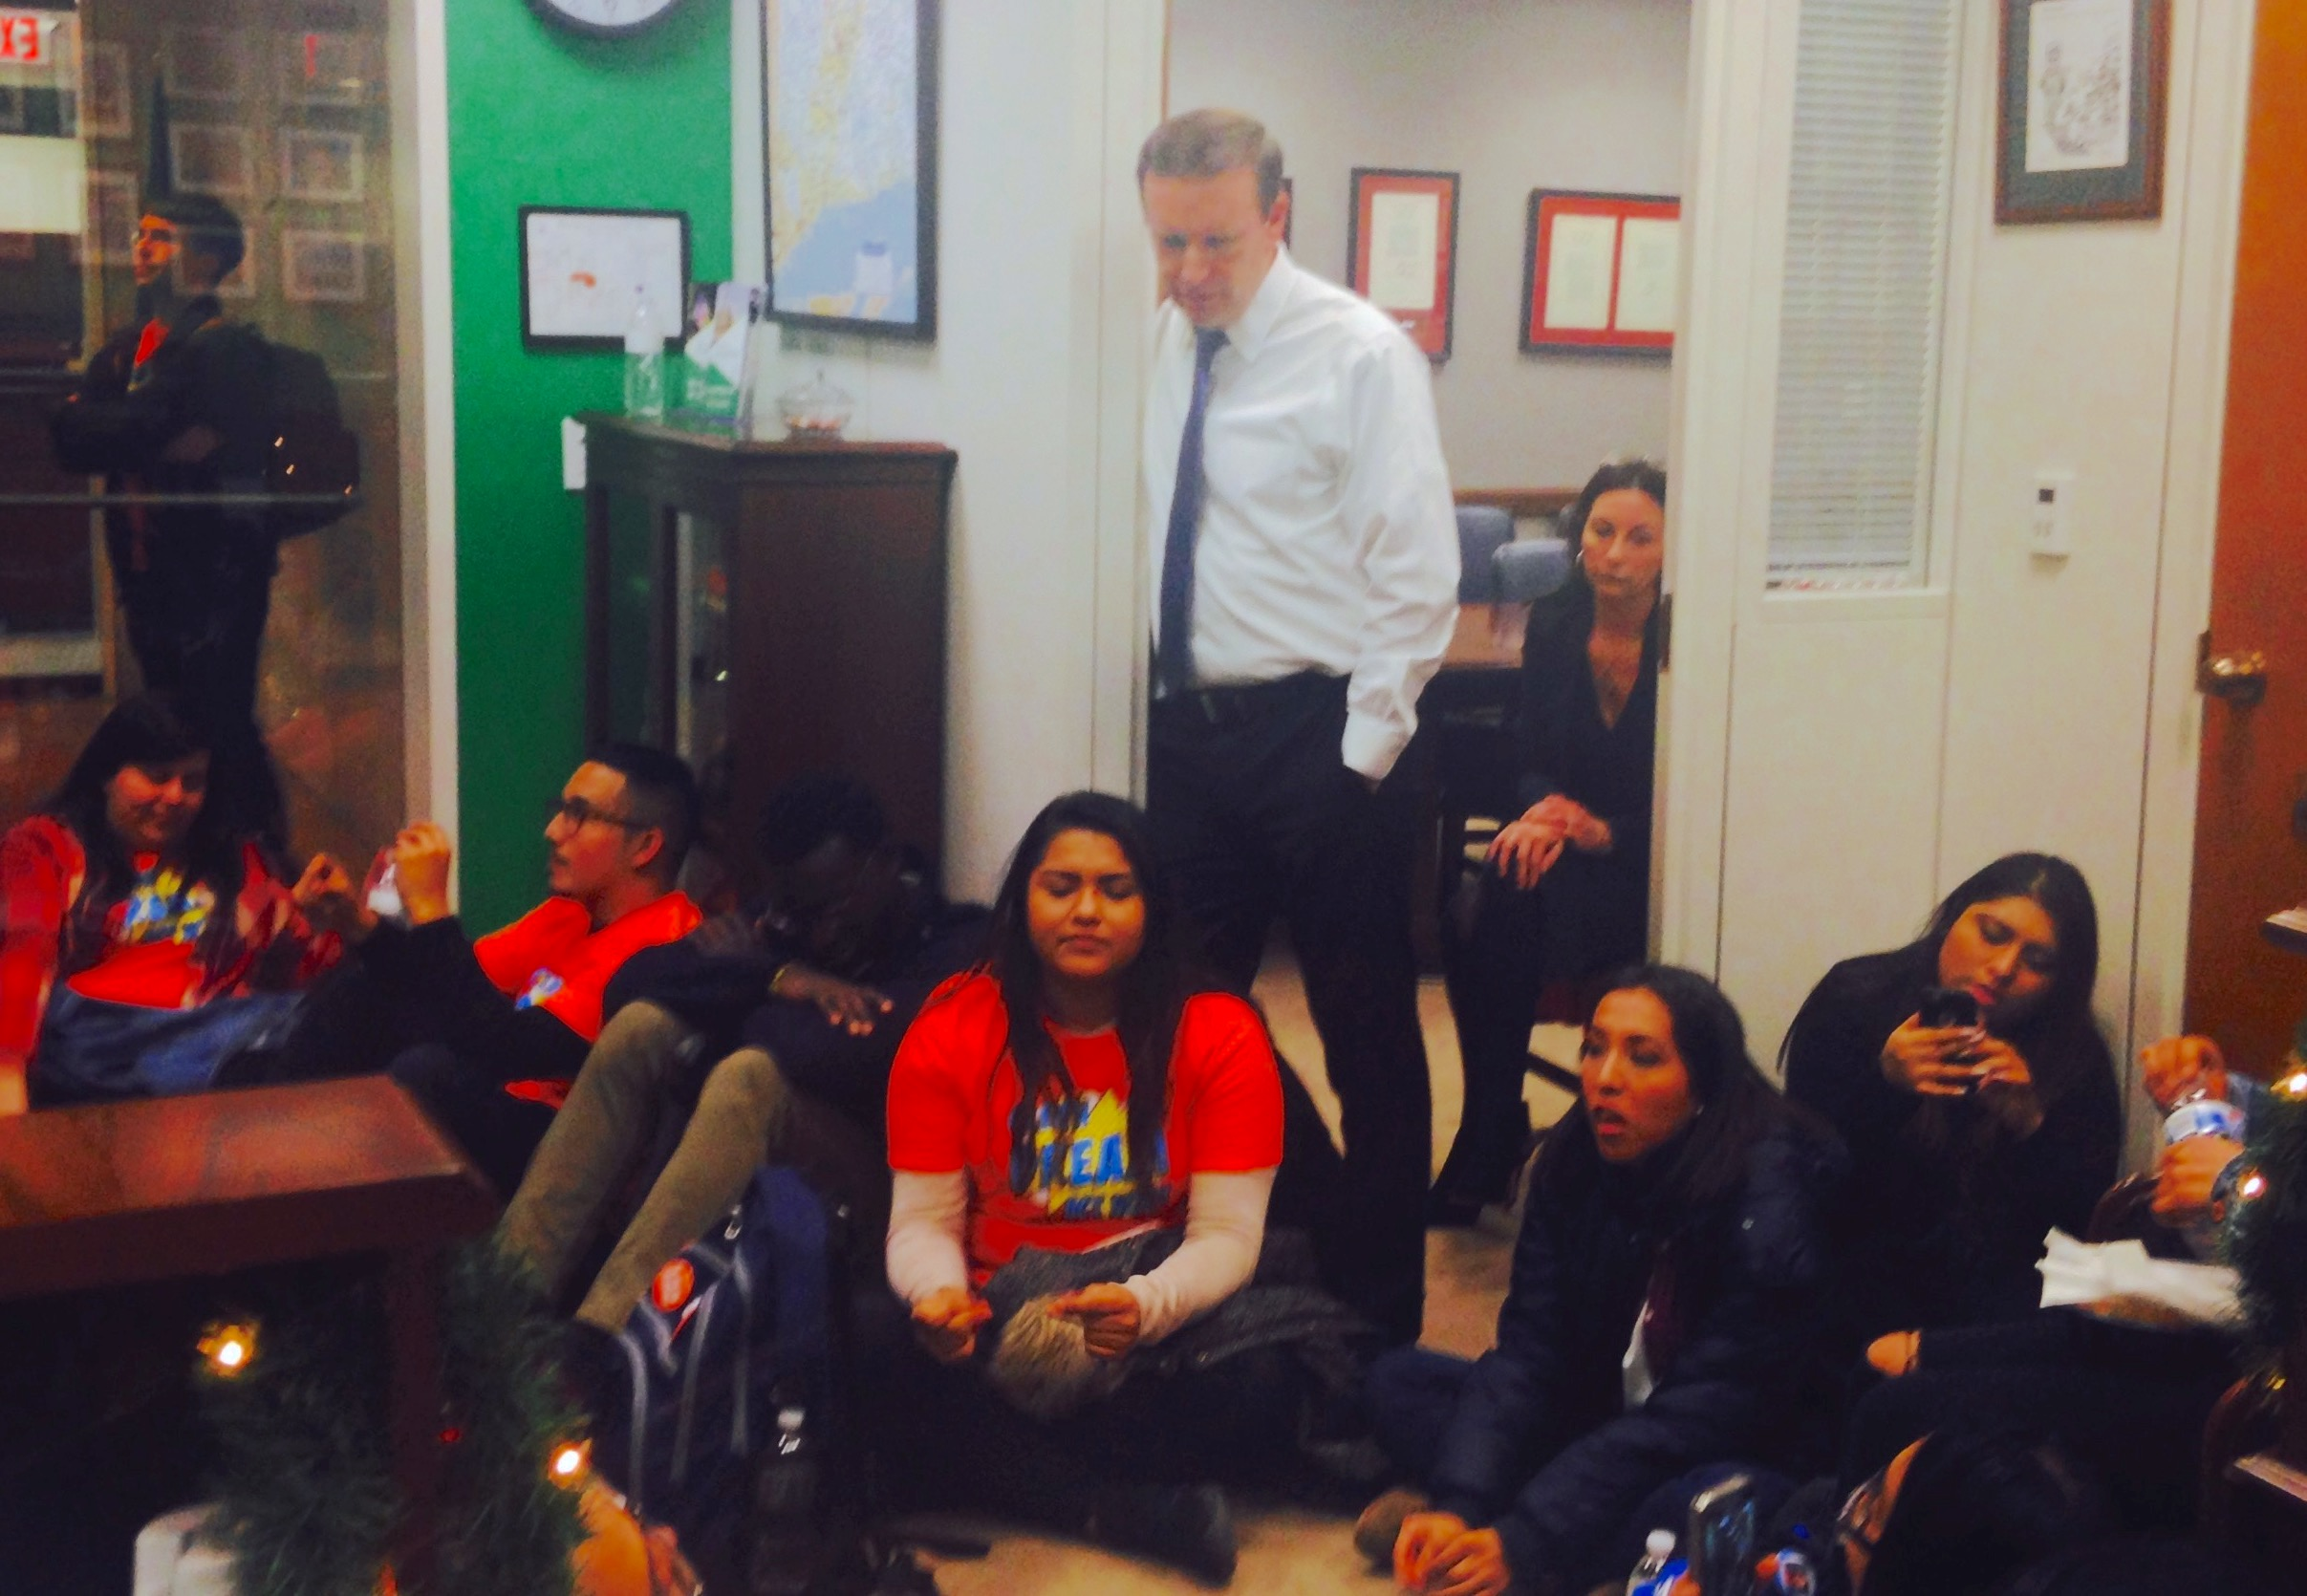 CT Dreamers seeking commitment stage sit-in at Murphy's office